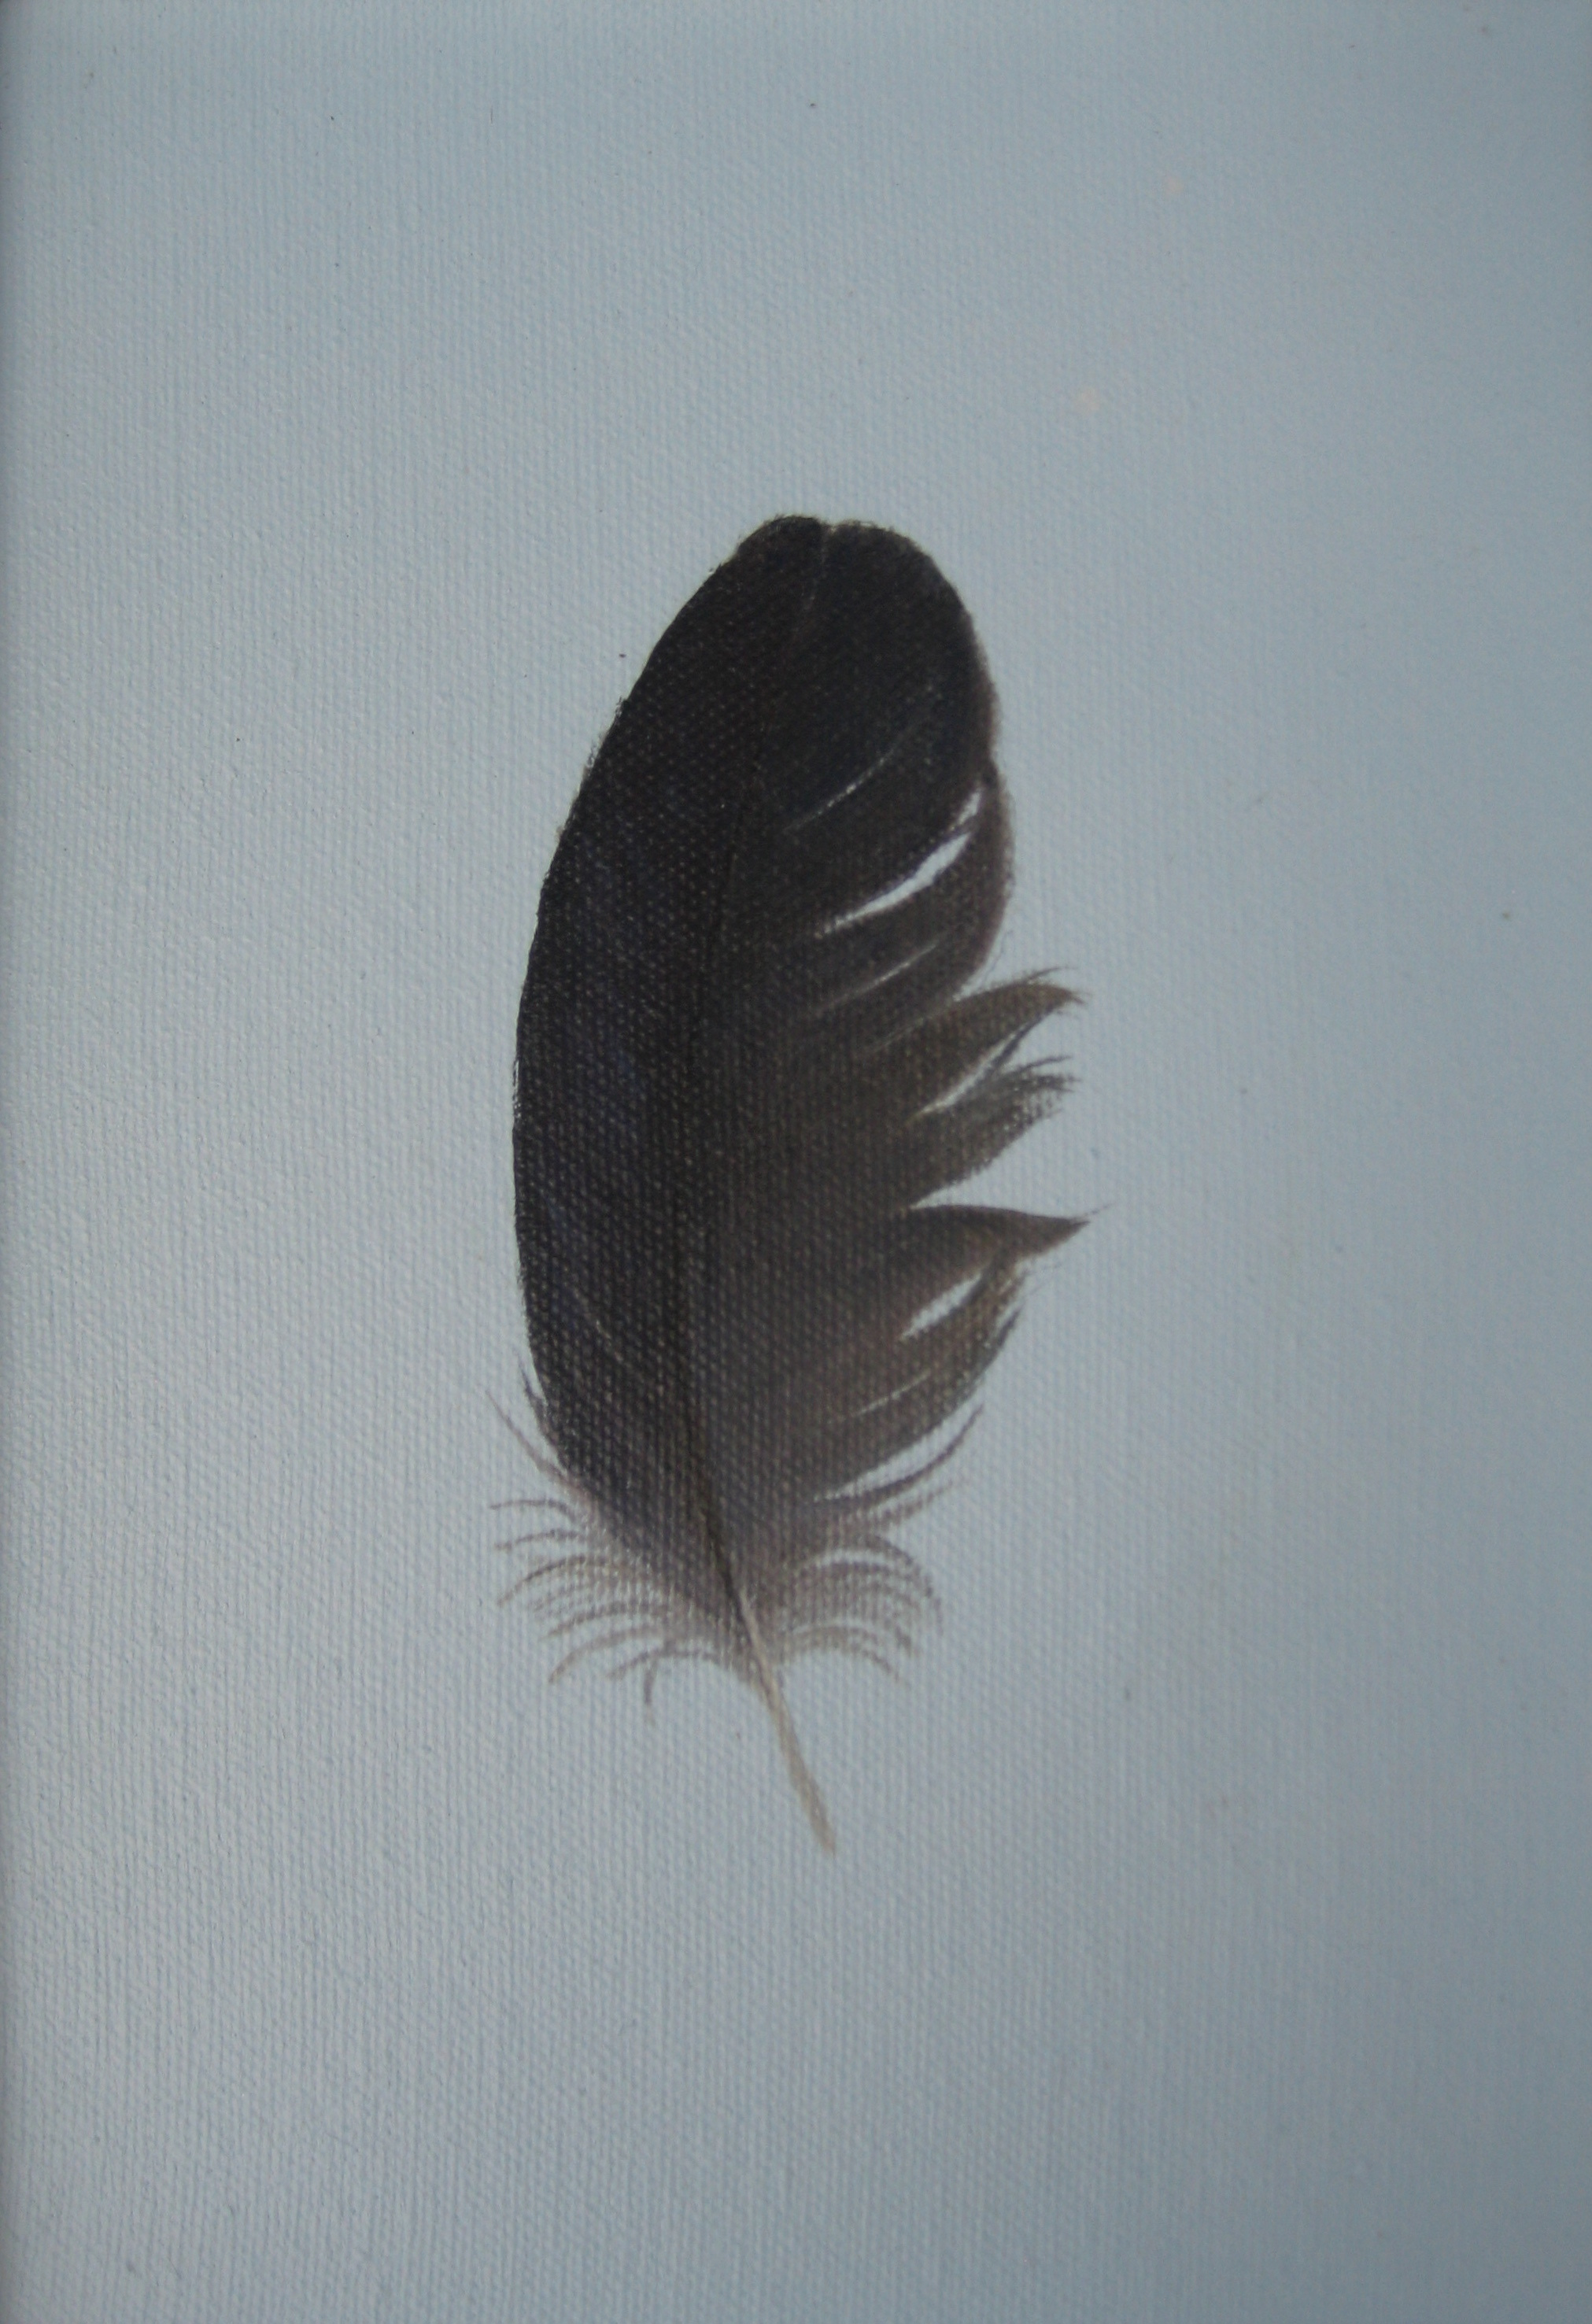 RUFFLED BLACK FEATHER